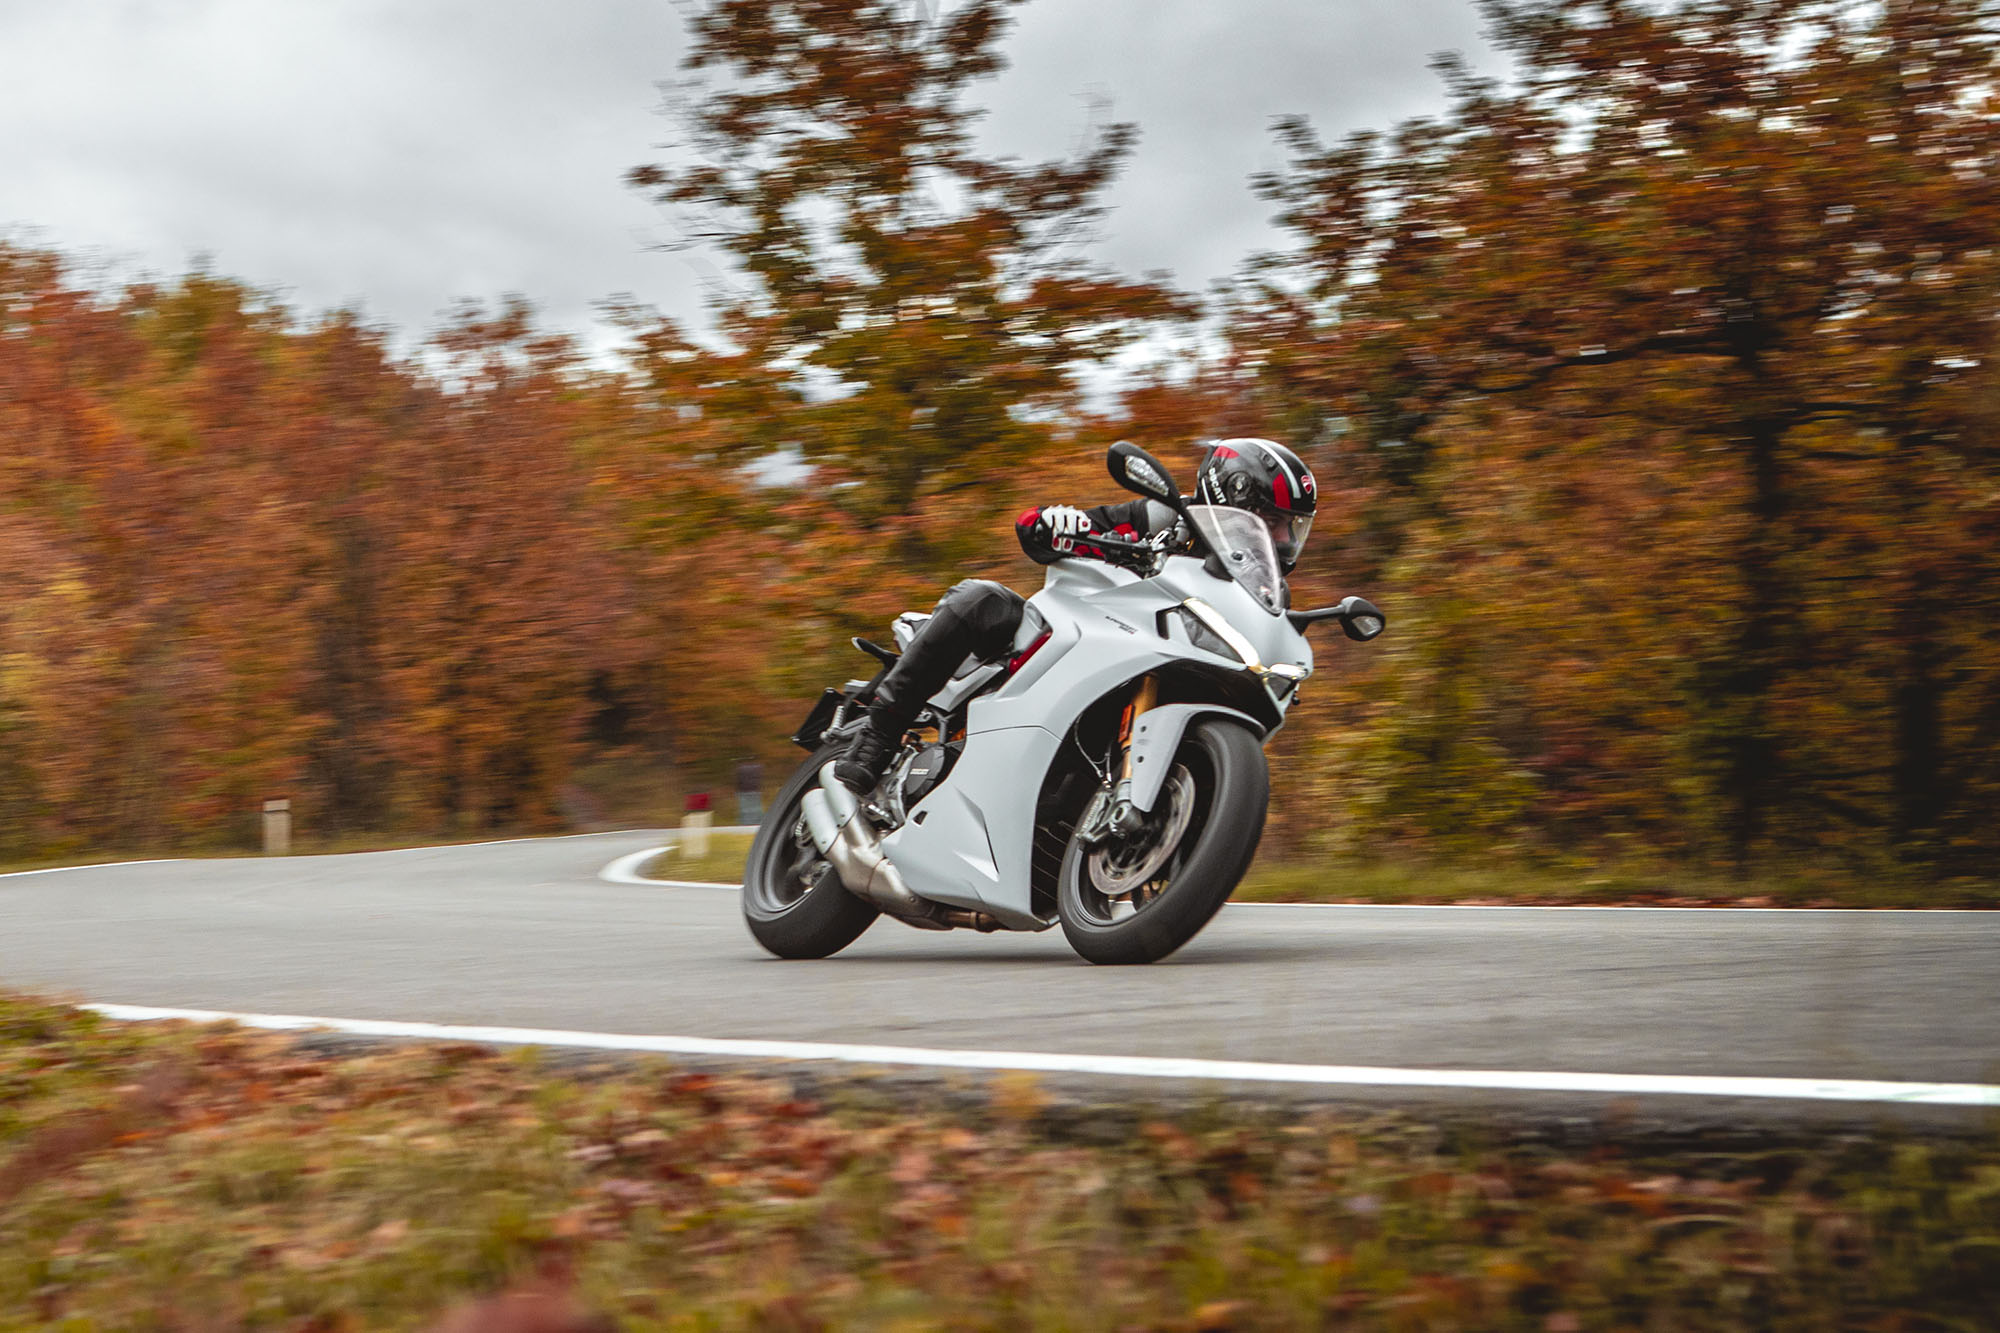 DUCATI_SUPERSPORT_950_S_AMBIENCE _11__UC210996_High